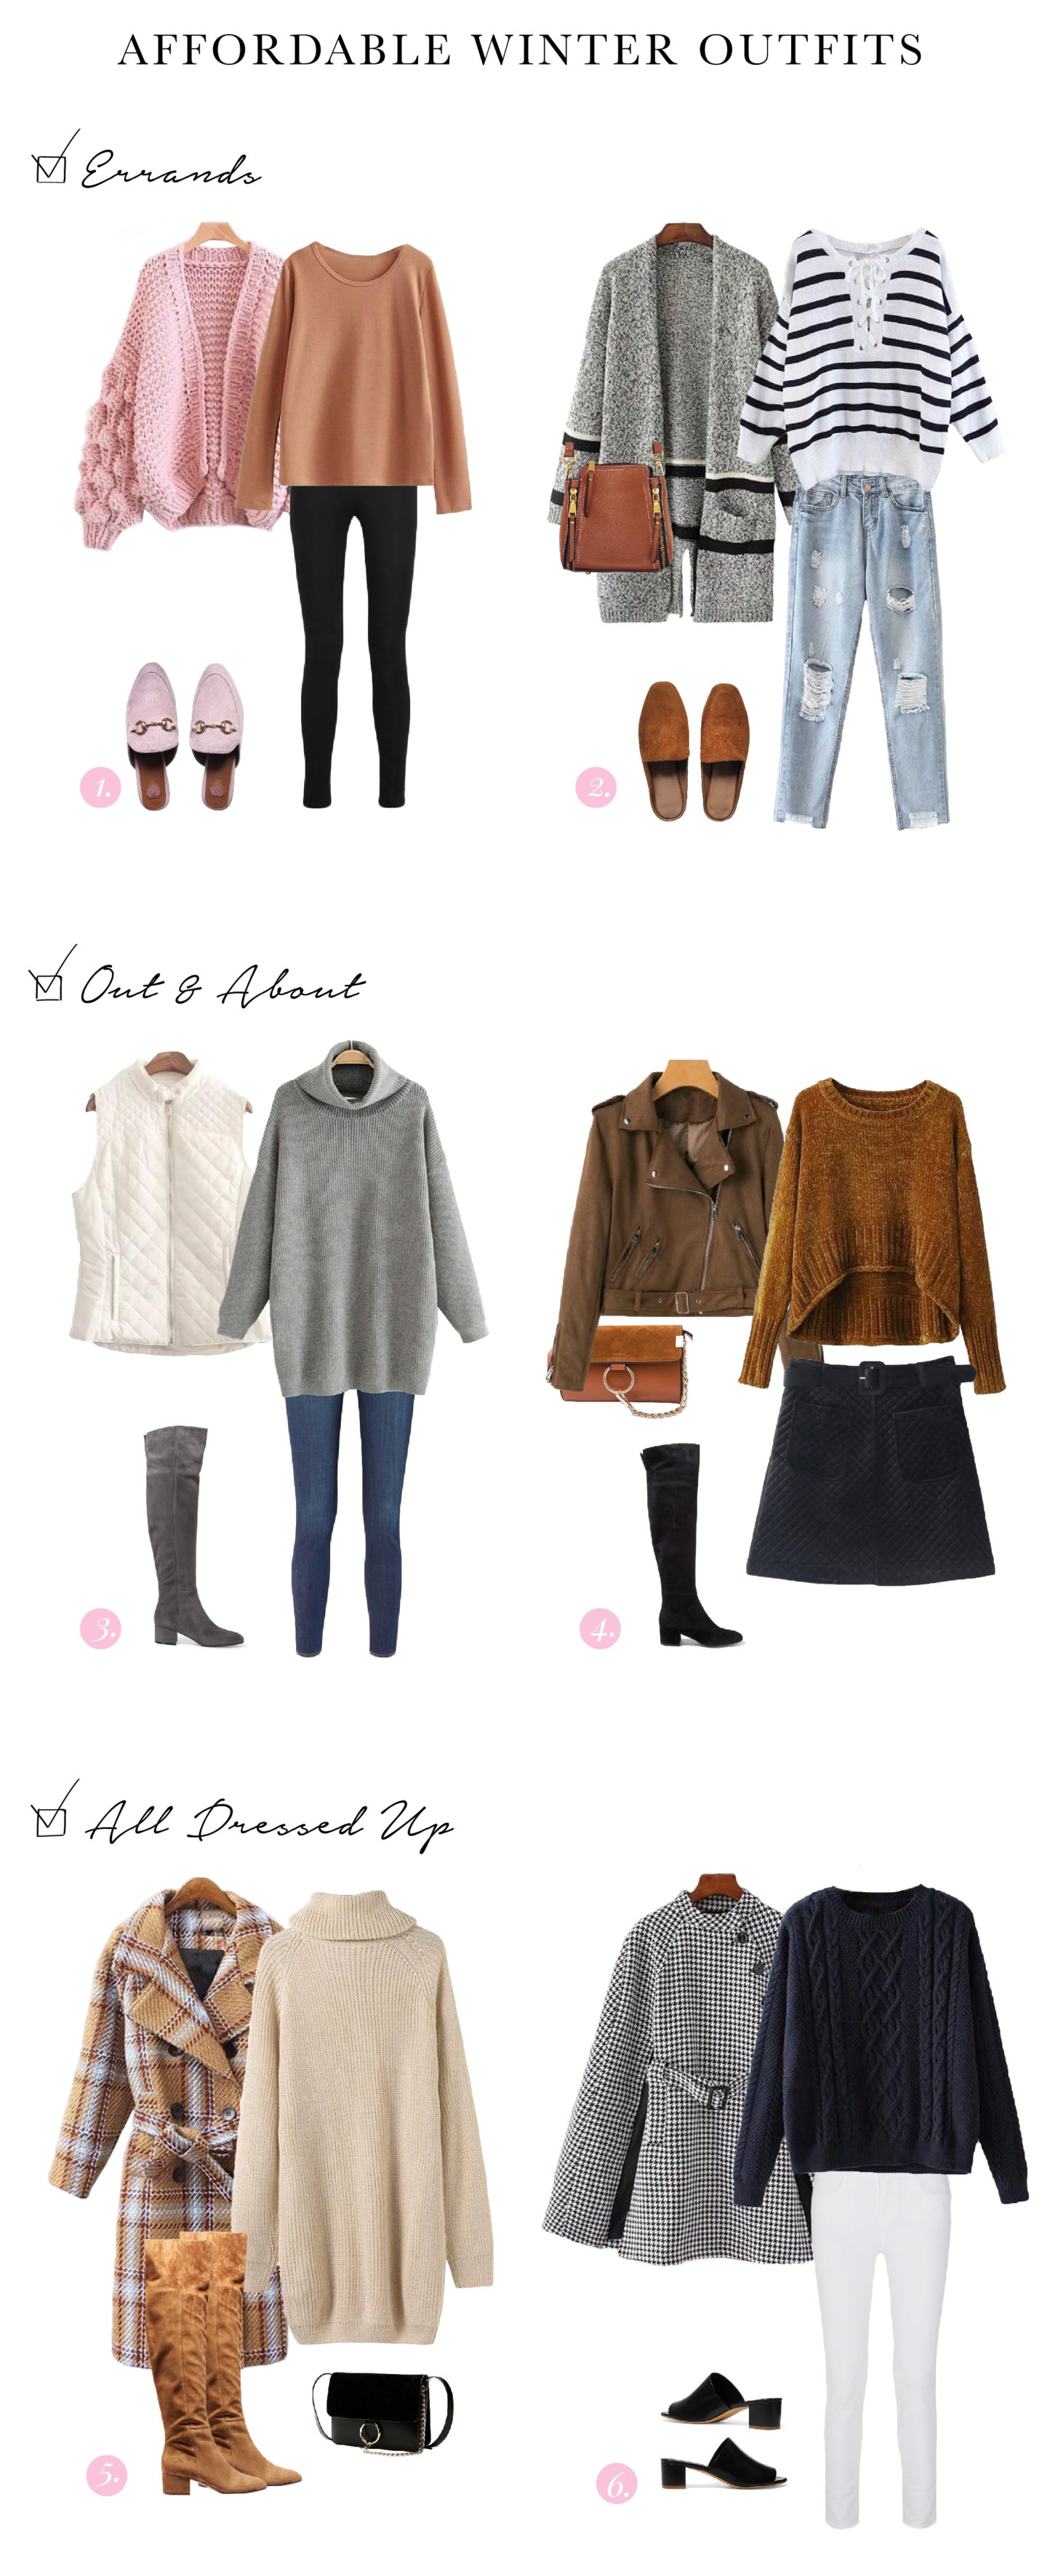 GOODNIGHT MACAROON WINTER OUTFIT IDEAS AFFORDABLE ONLINE SHOPPING